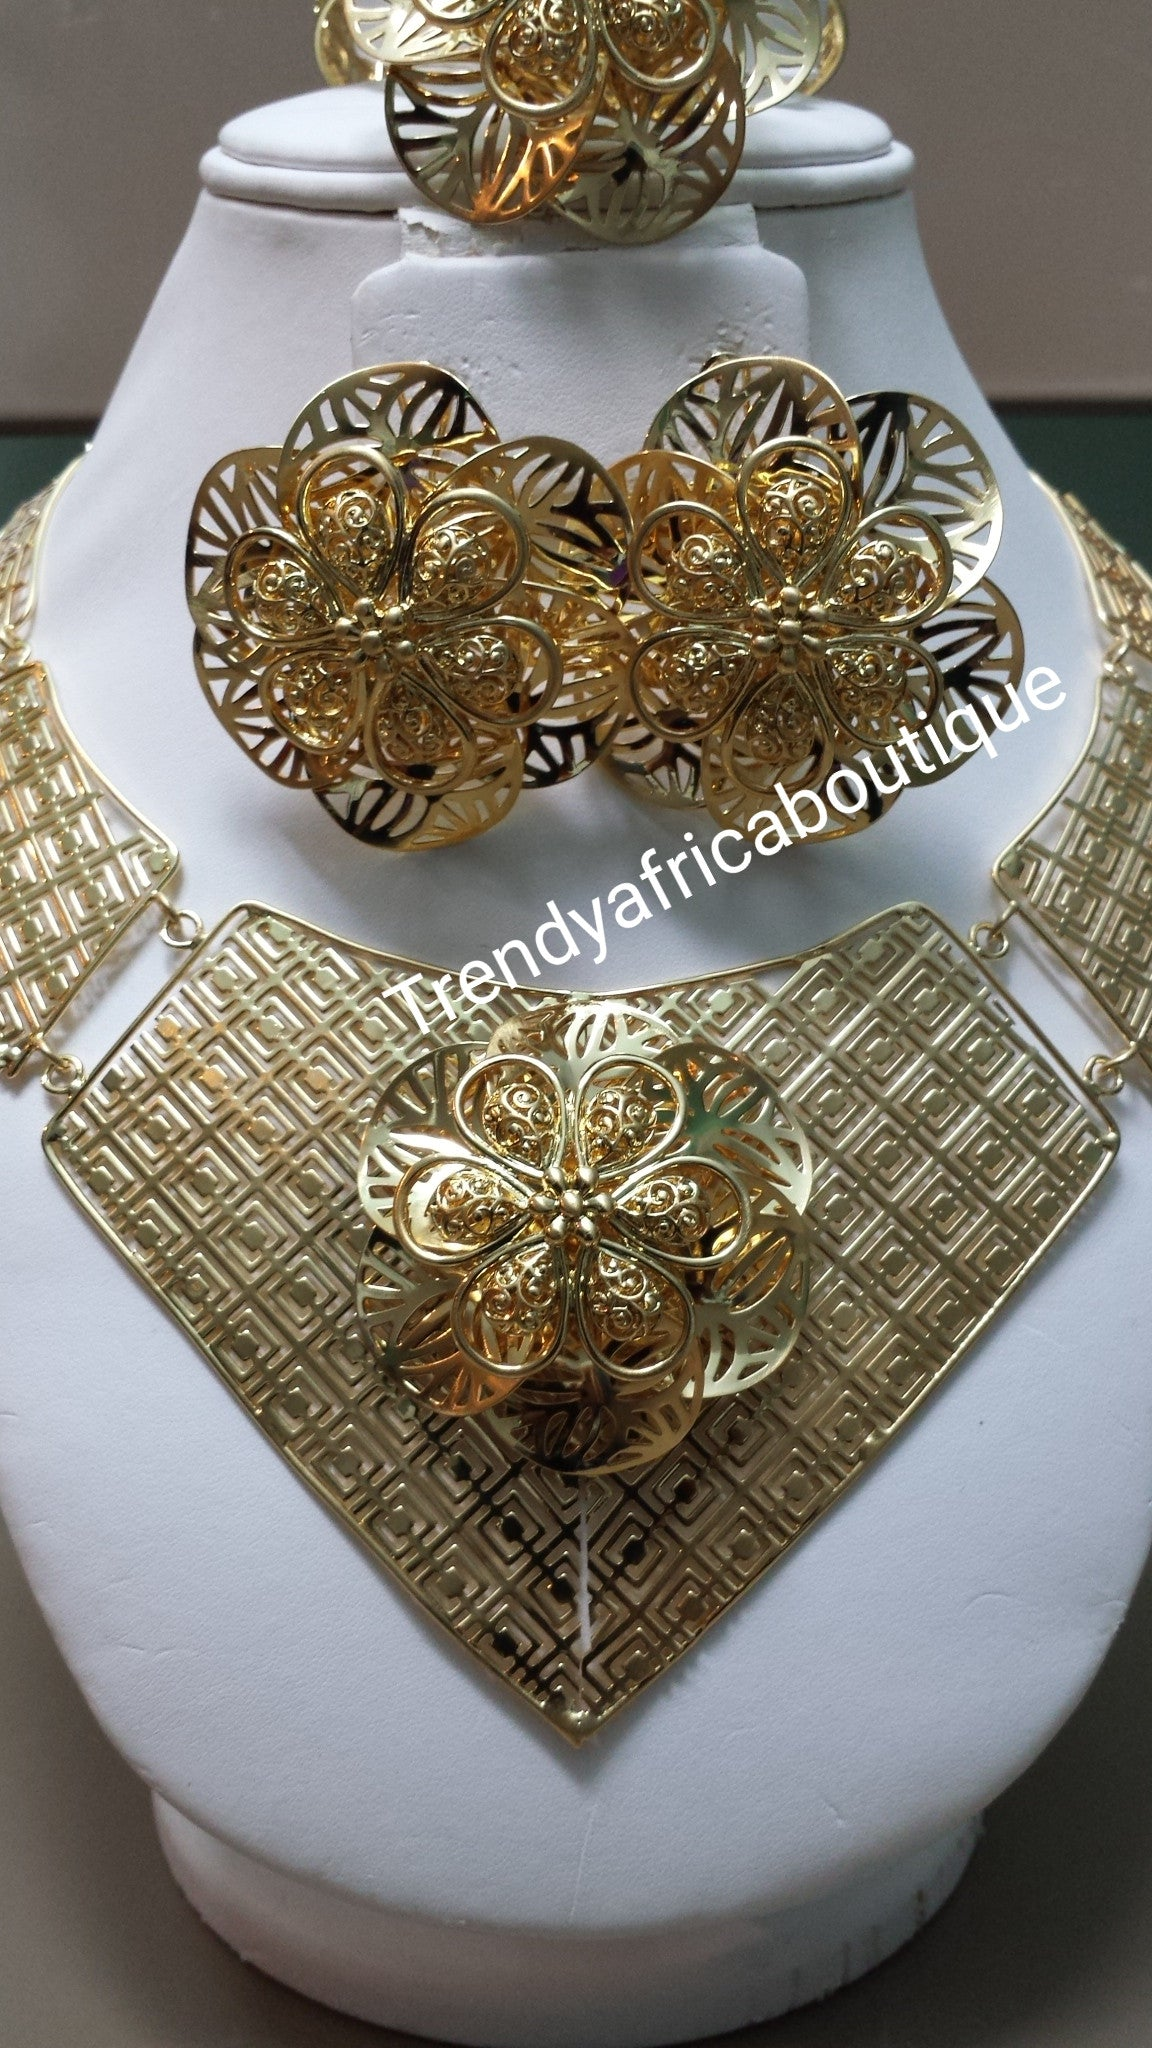 Sale: 4pcs choker necklace jewelry set. 18k gold plated matching choker set. Beautiful flower design